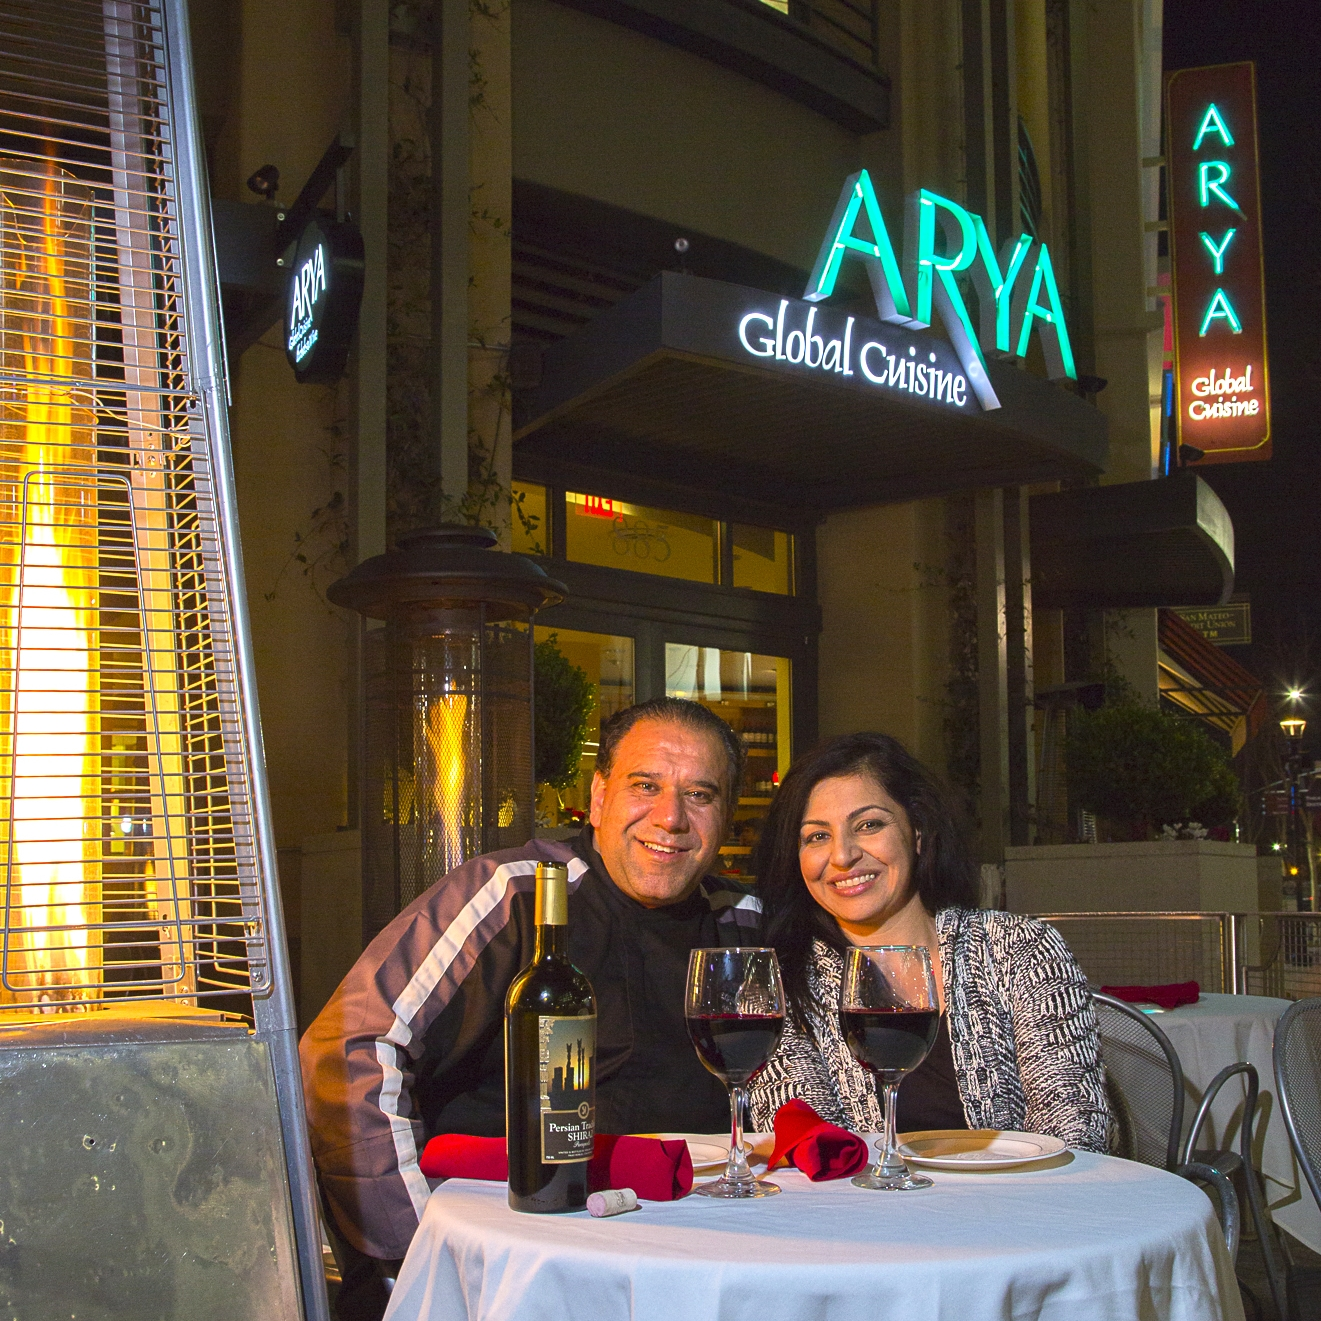 Michael and Fera Hashemi, the husband and wife duo behind Arya